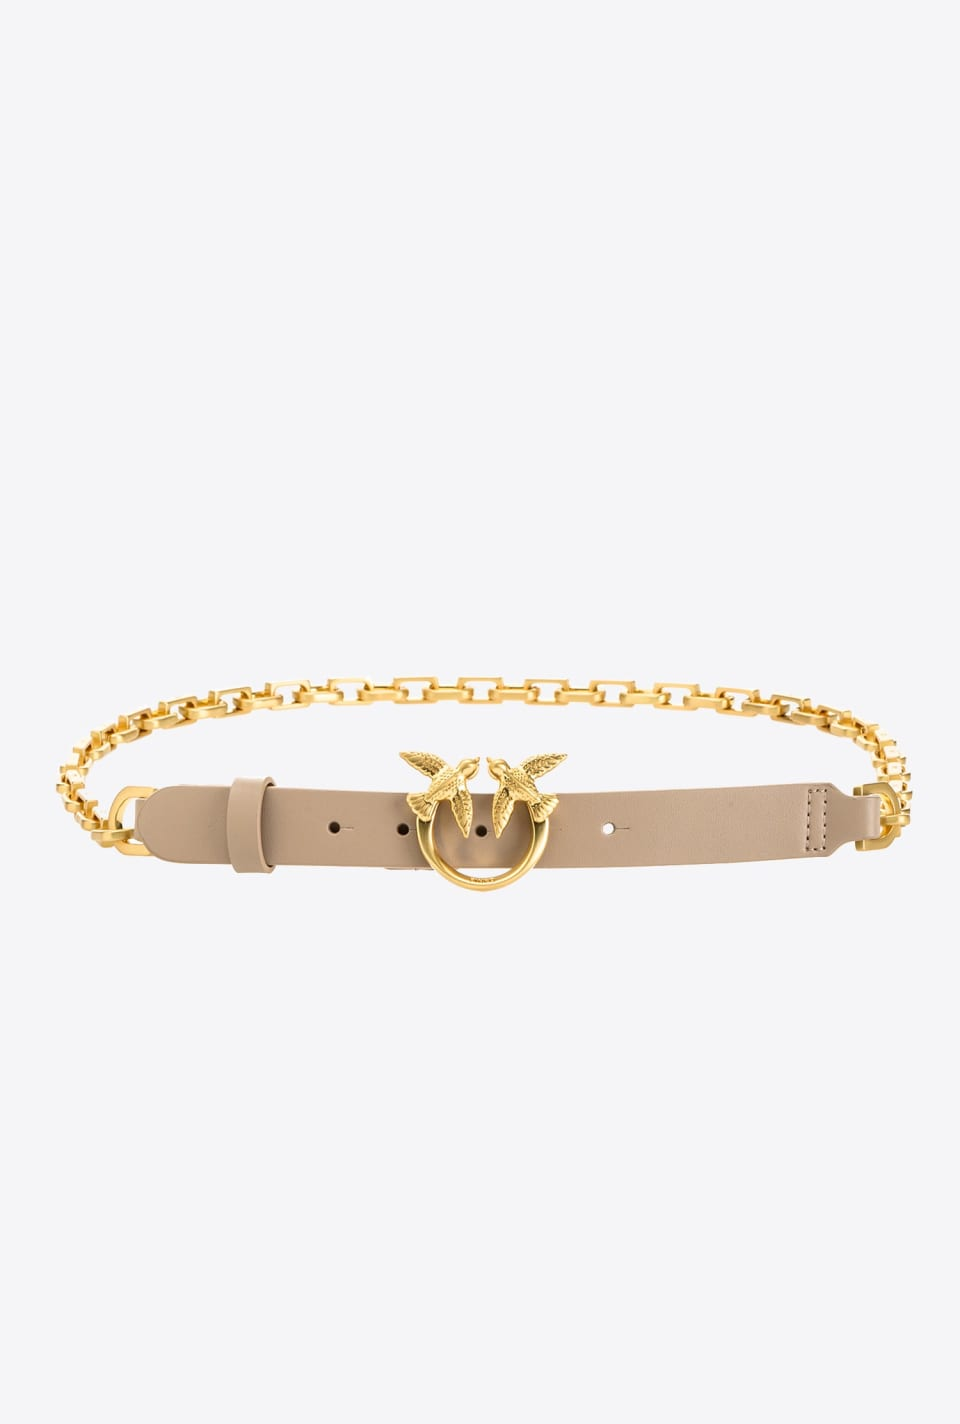 Leather-and-chain Love Birds belt - Pinko